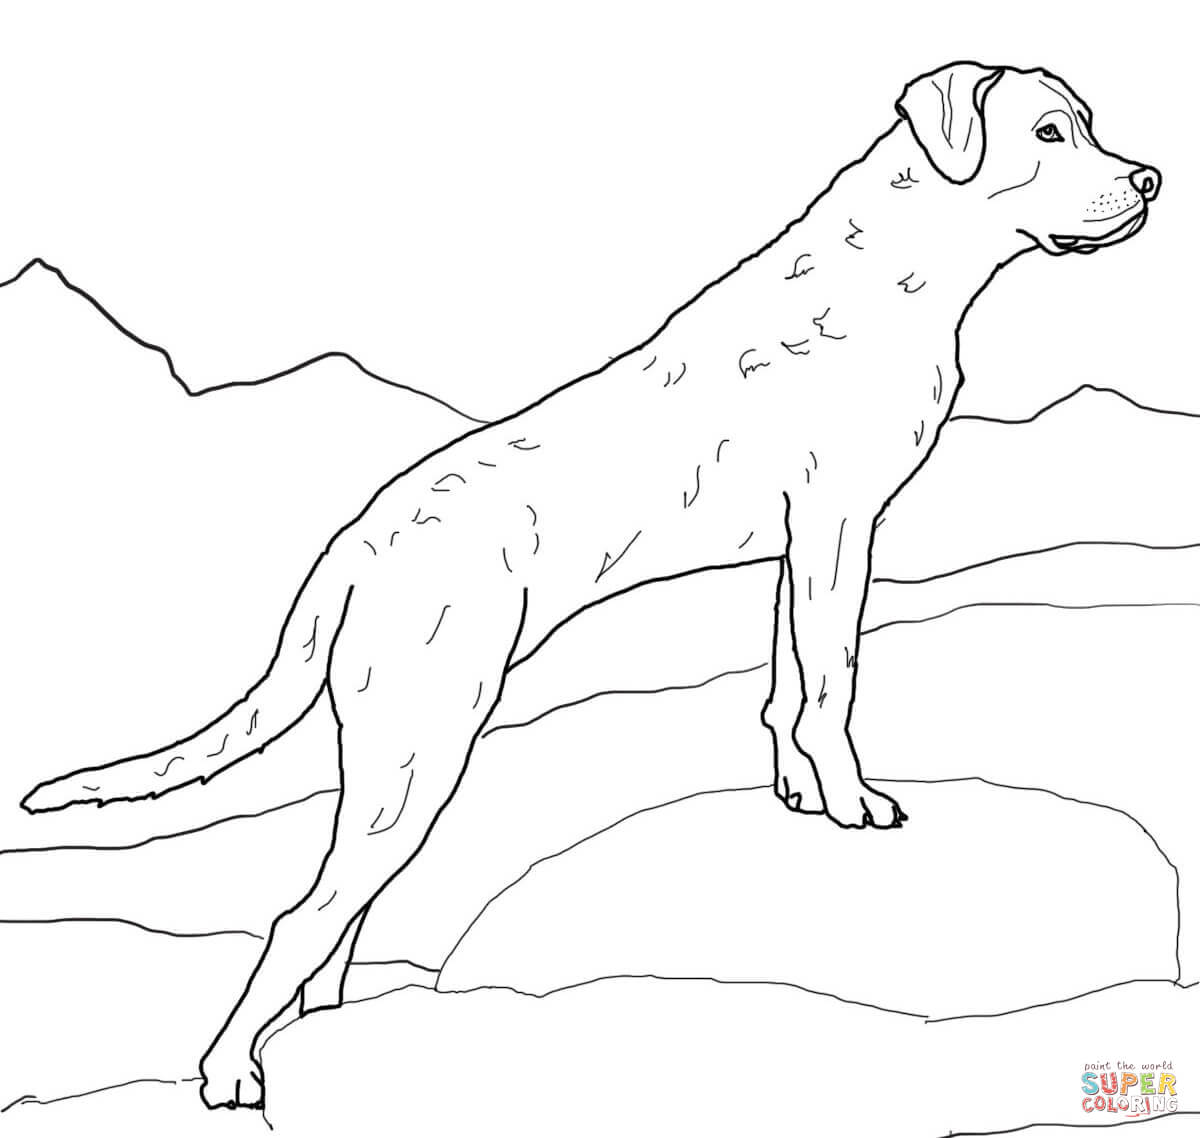 Golden Retriever coloring page | Free Printable Coloring Pages